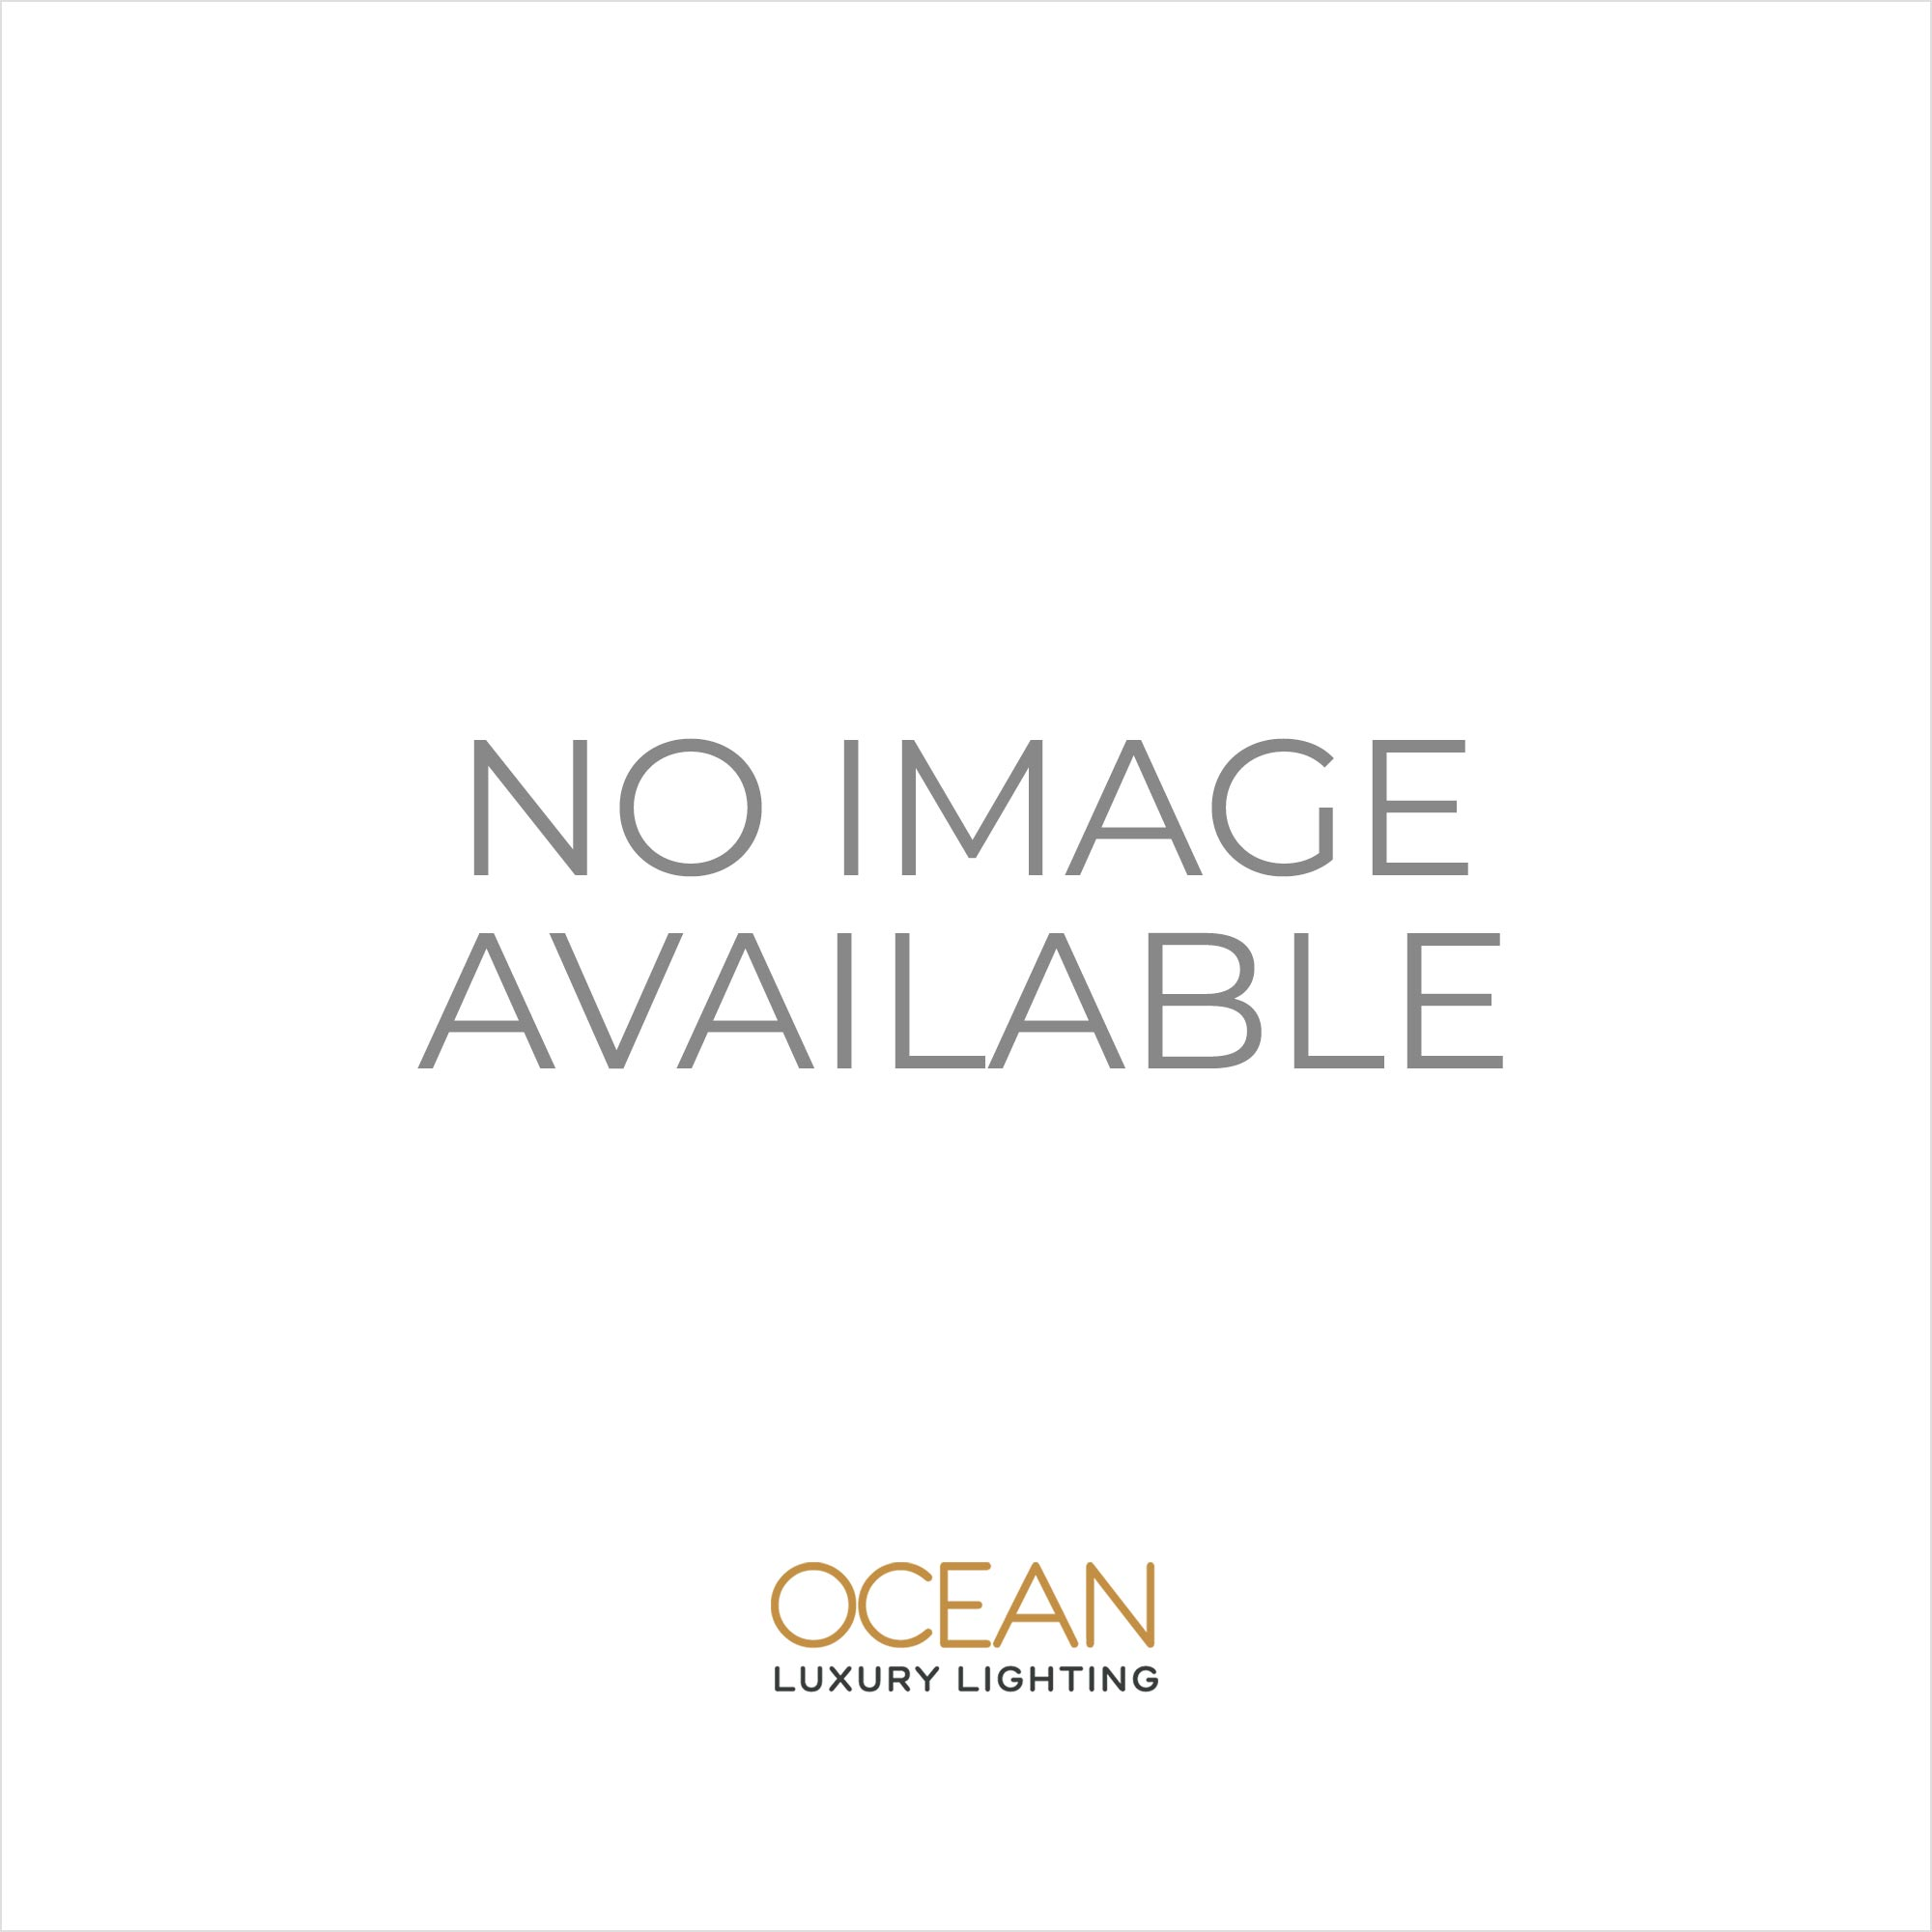 Dar DER05 Derwent 5 light traditional ceiling light semi-flush brass plated finish